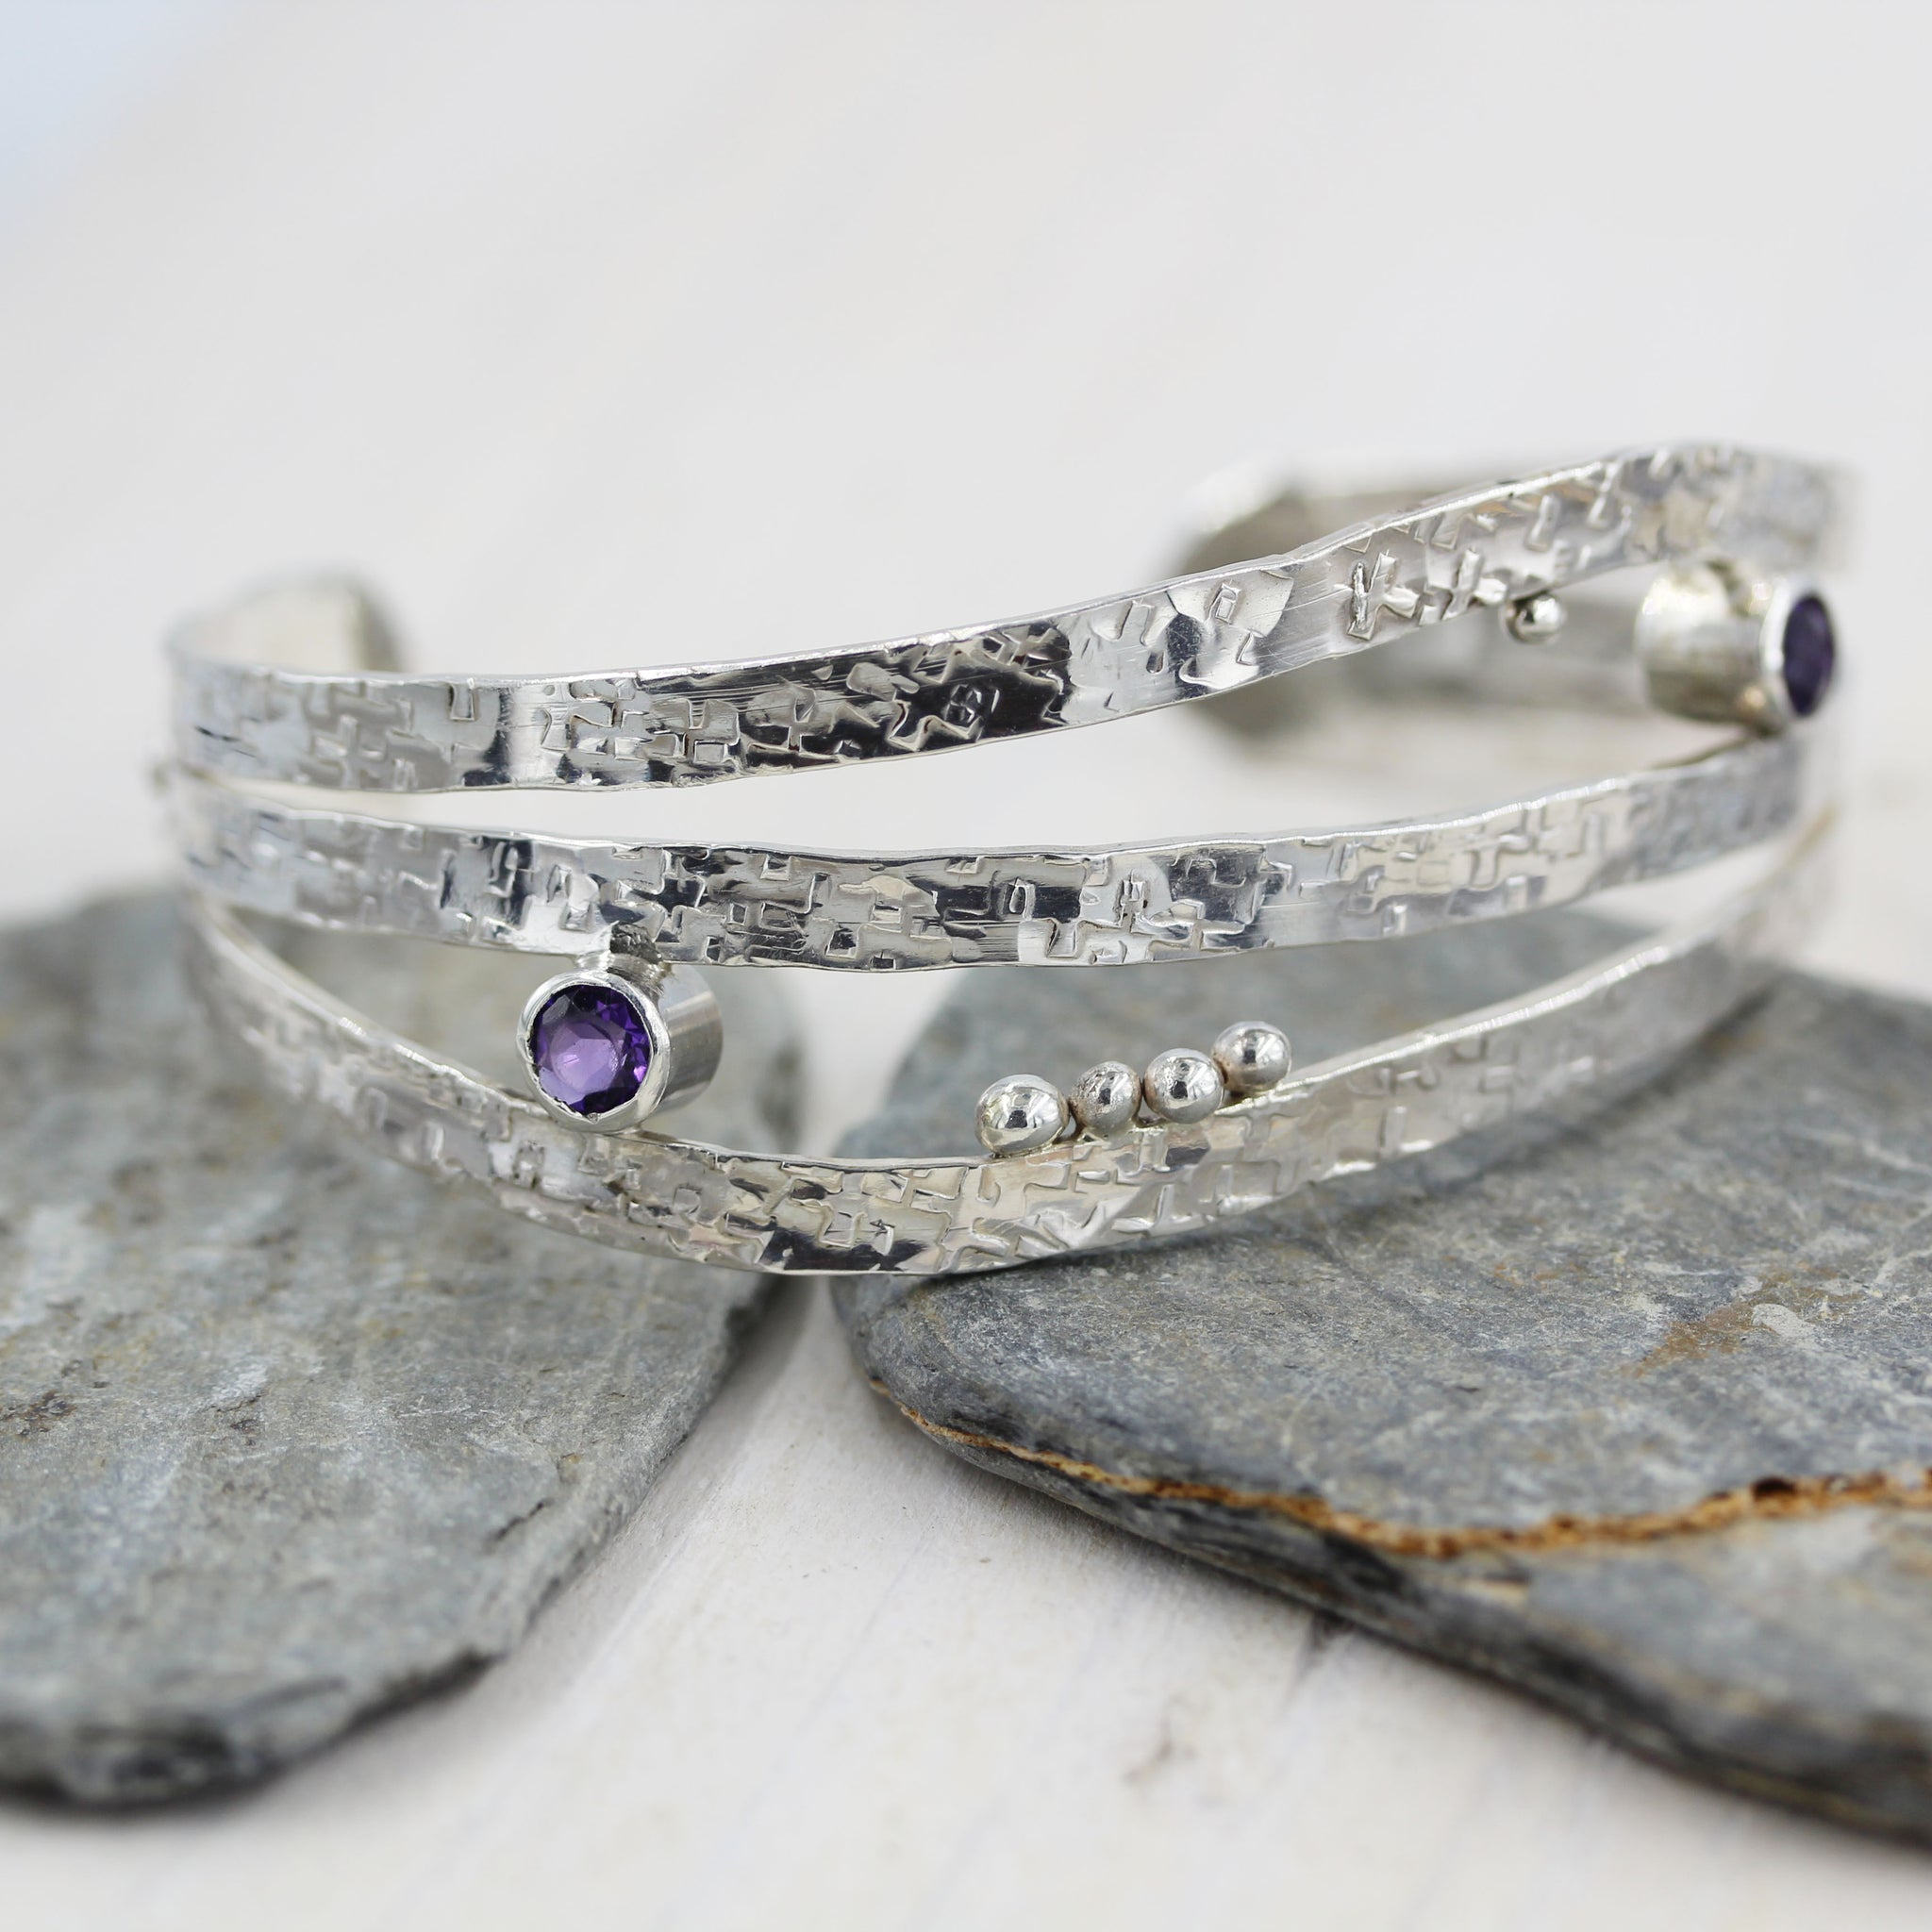 Handmade sterling silver and Amethyst Cuff Bracelet by Gemma Tremayne Jewellery.